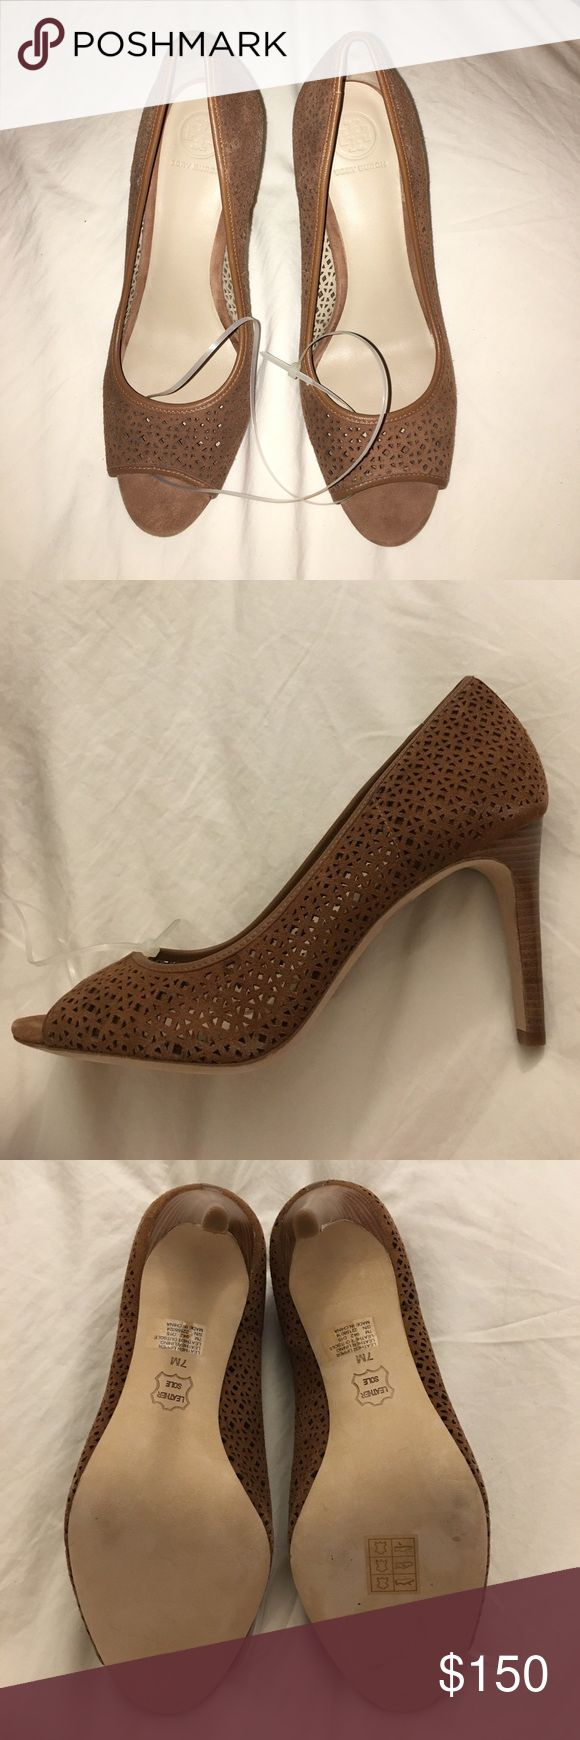 Tory Burch Peep Toe Pumps Perforated peep toe pumps. Tory Burch Shoes Heels